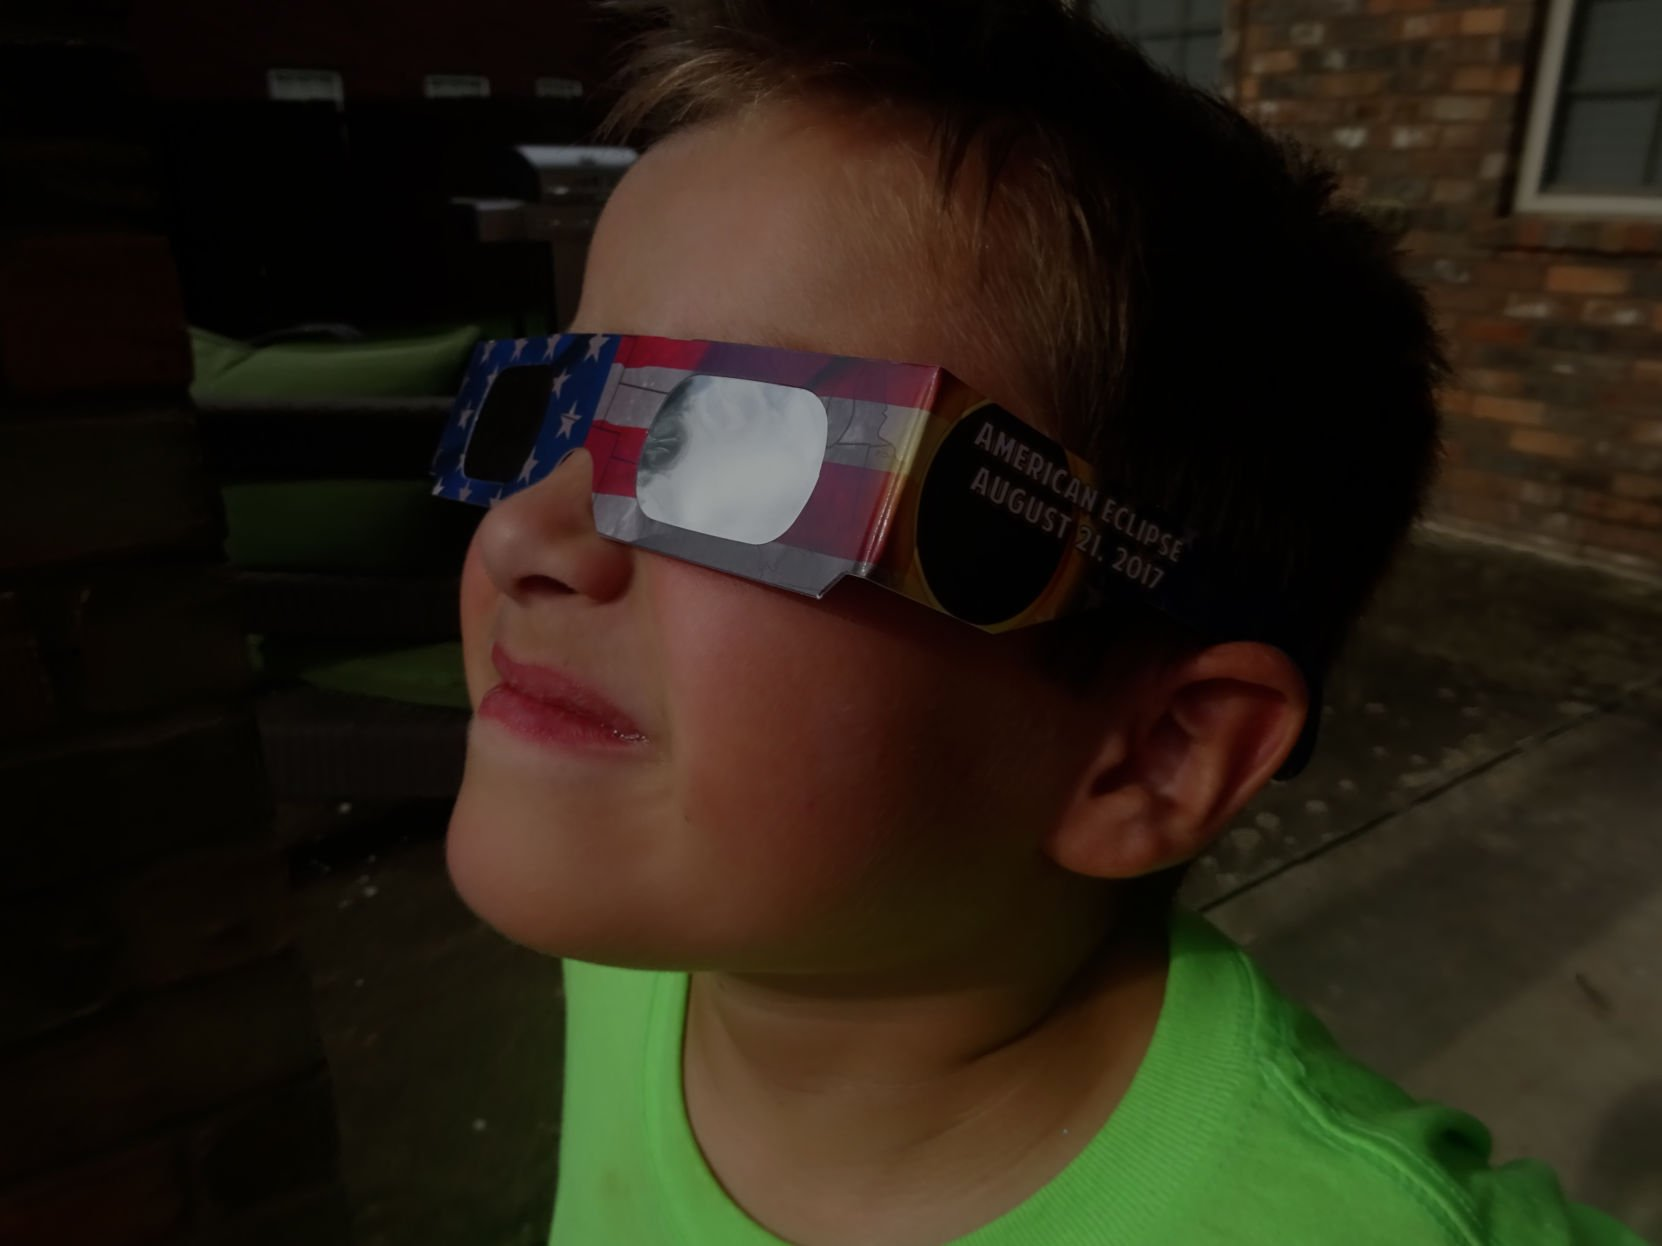 Amazon recalls solar eclipse glasses